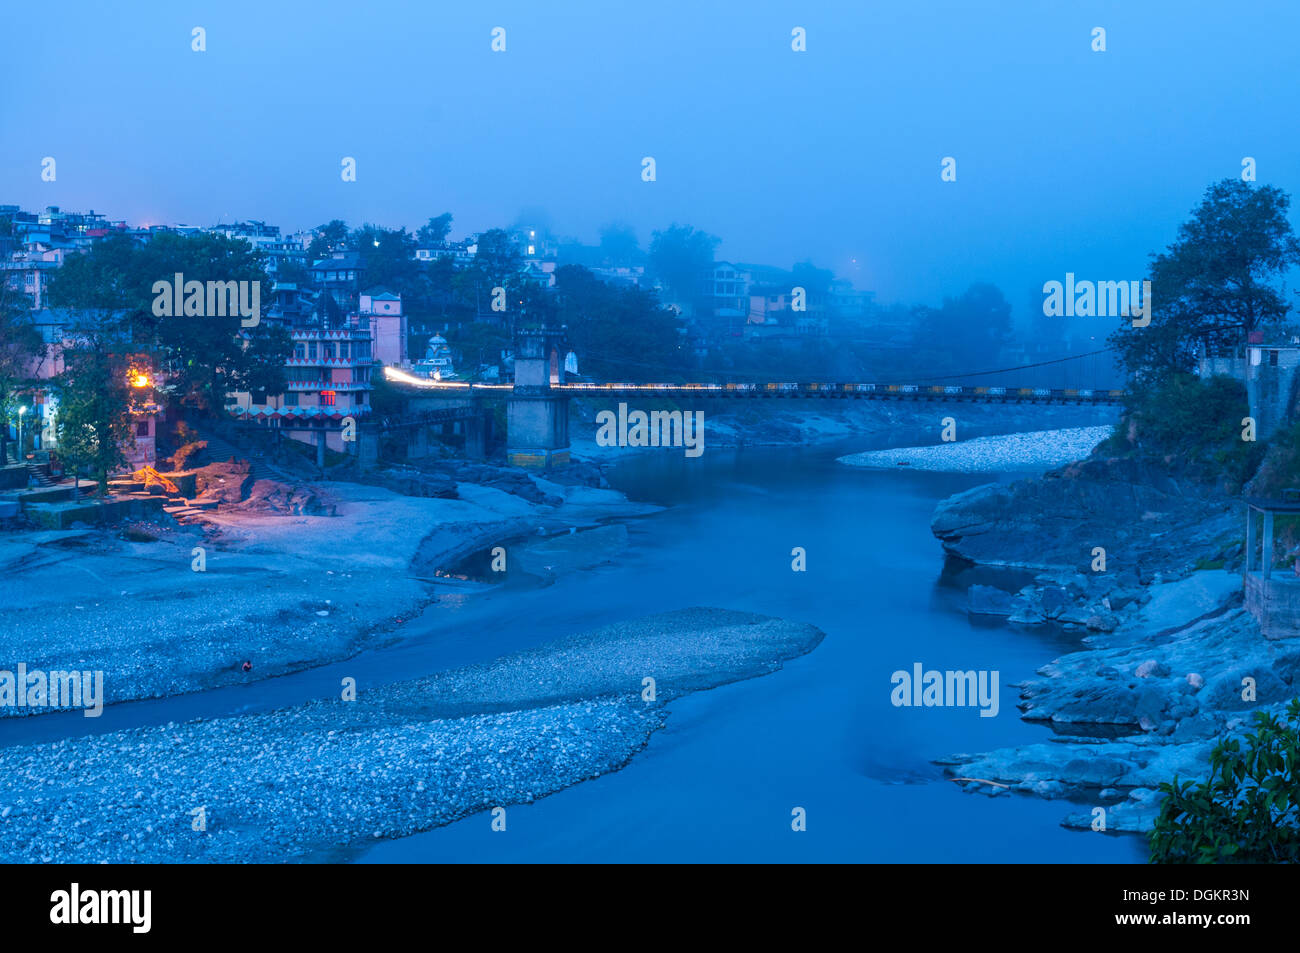 Bridge over River Beas. - Stock Image